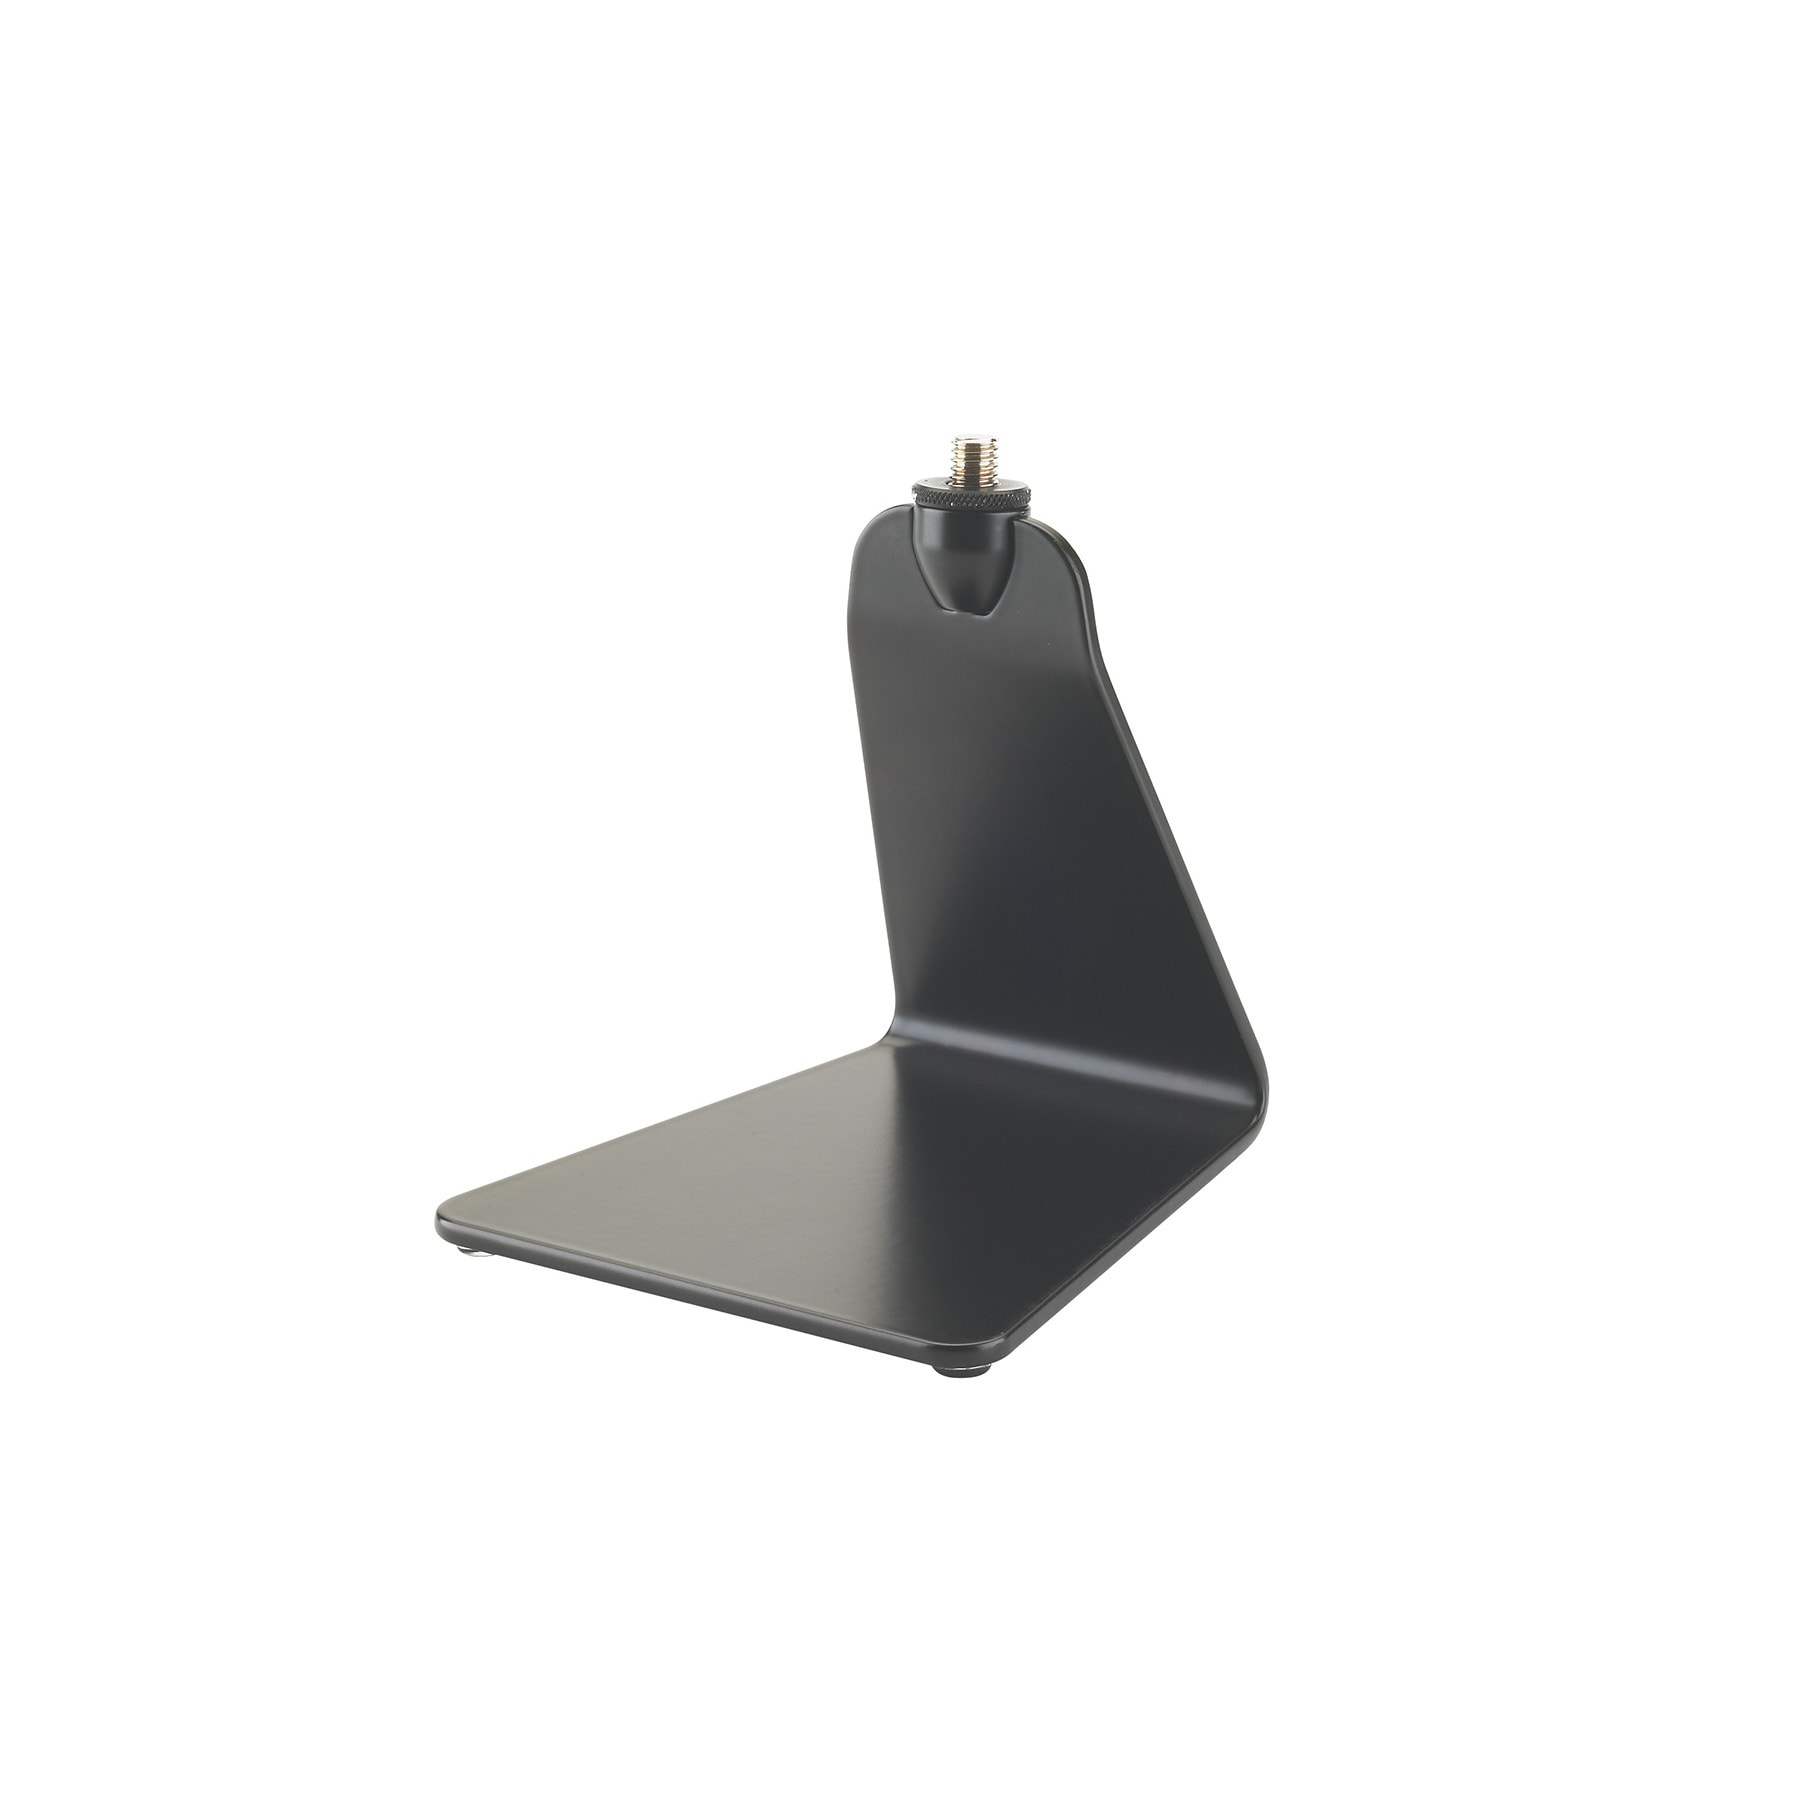 KM23250 - Design microphone table stand